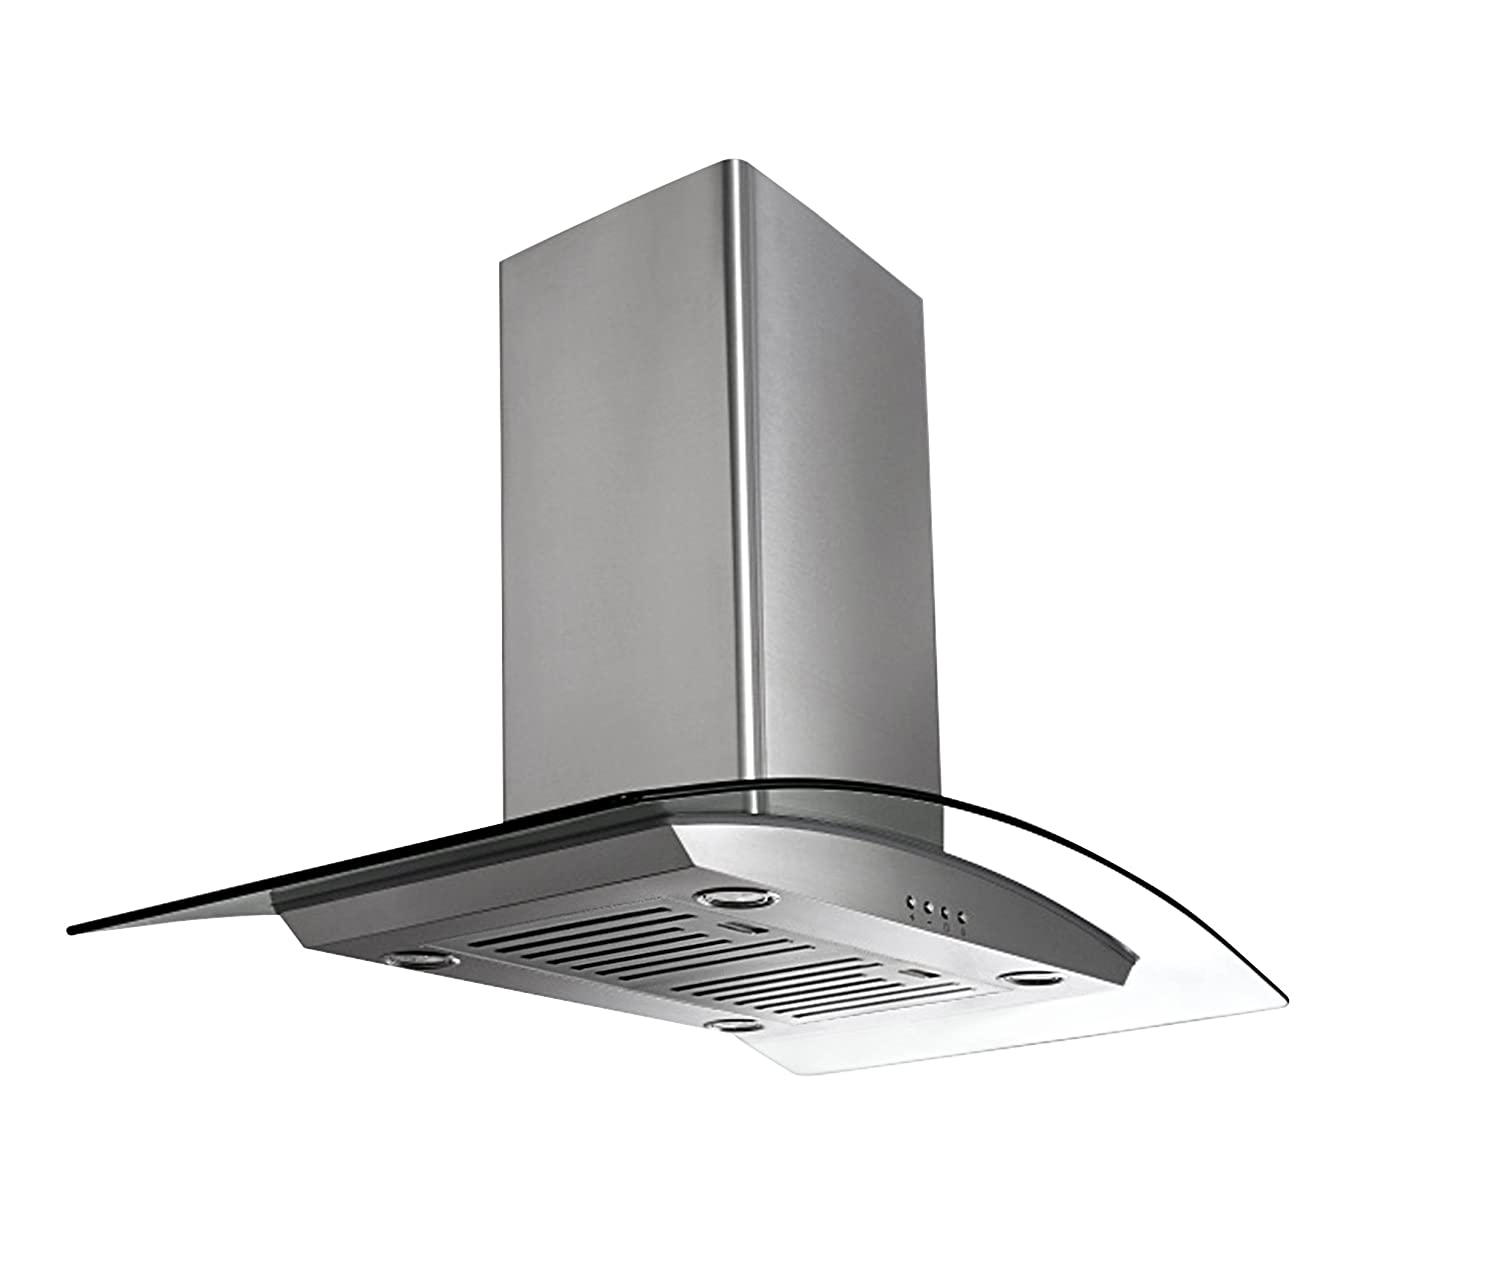 Ancona IGCP430 Island-Mounted Glass Canopy Style Convertible Range Hood, 30-Inch, Stainless Steel AMS Inc AN-1460